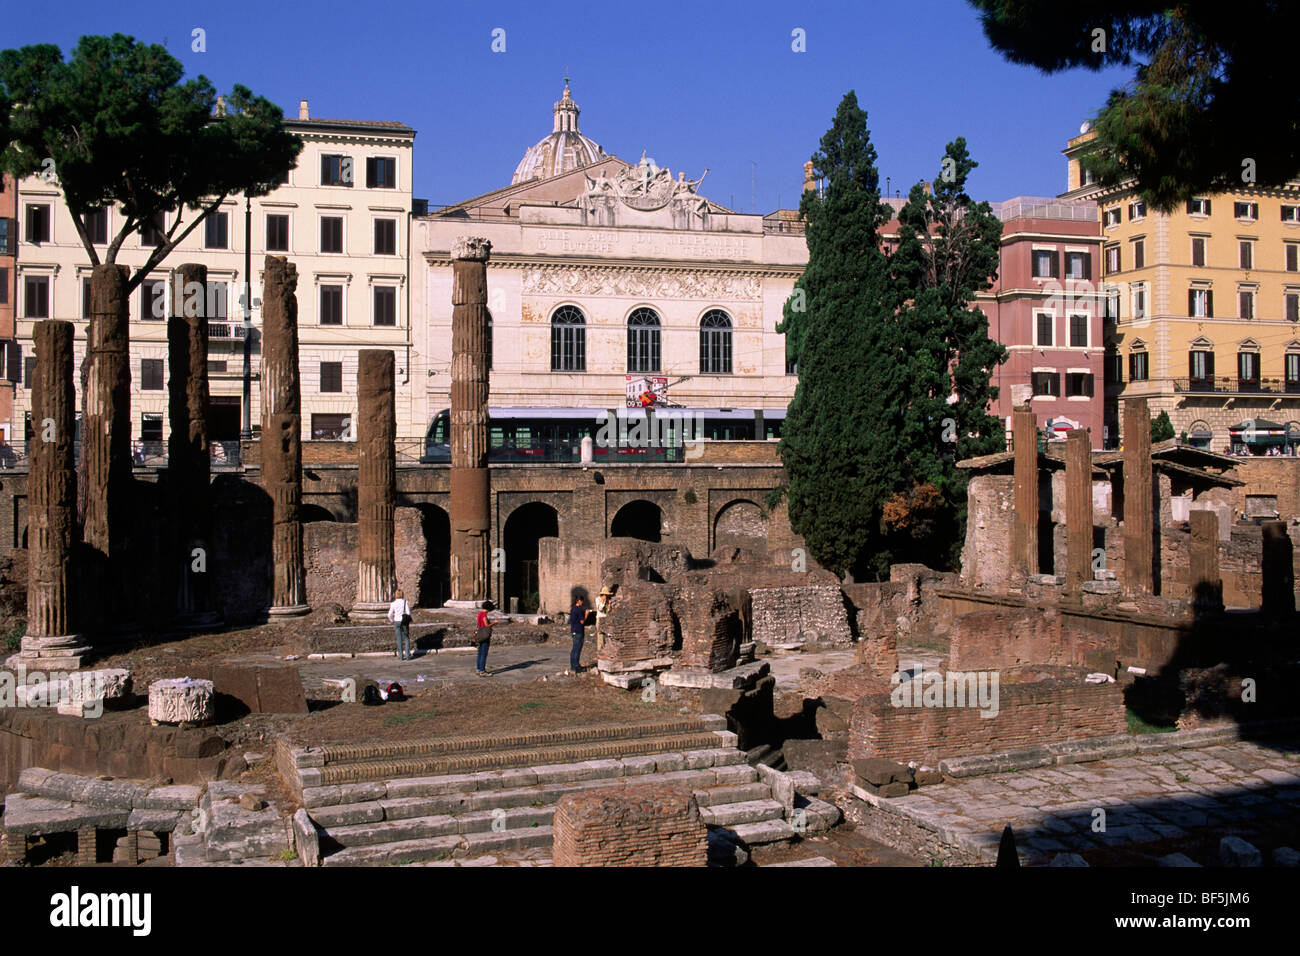 italy, rome, archaeological area of largo di torre argentina with the theatre in the background - Stock Image